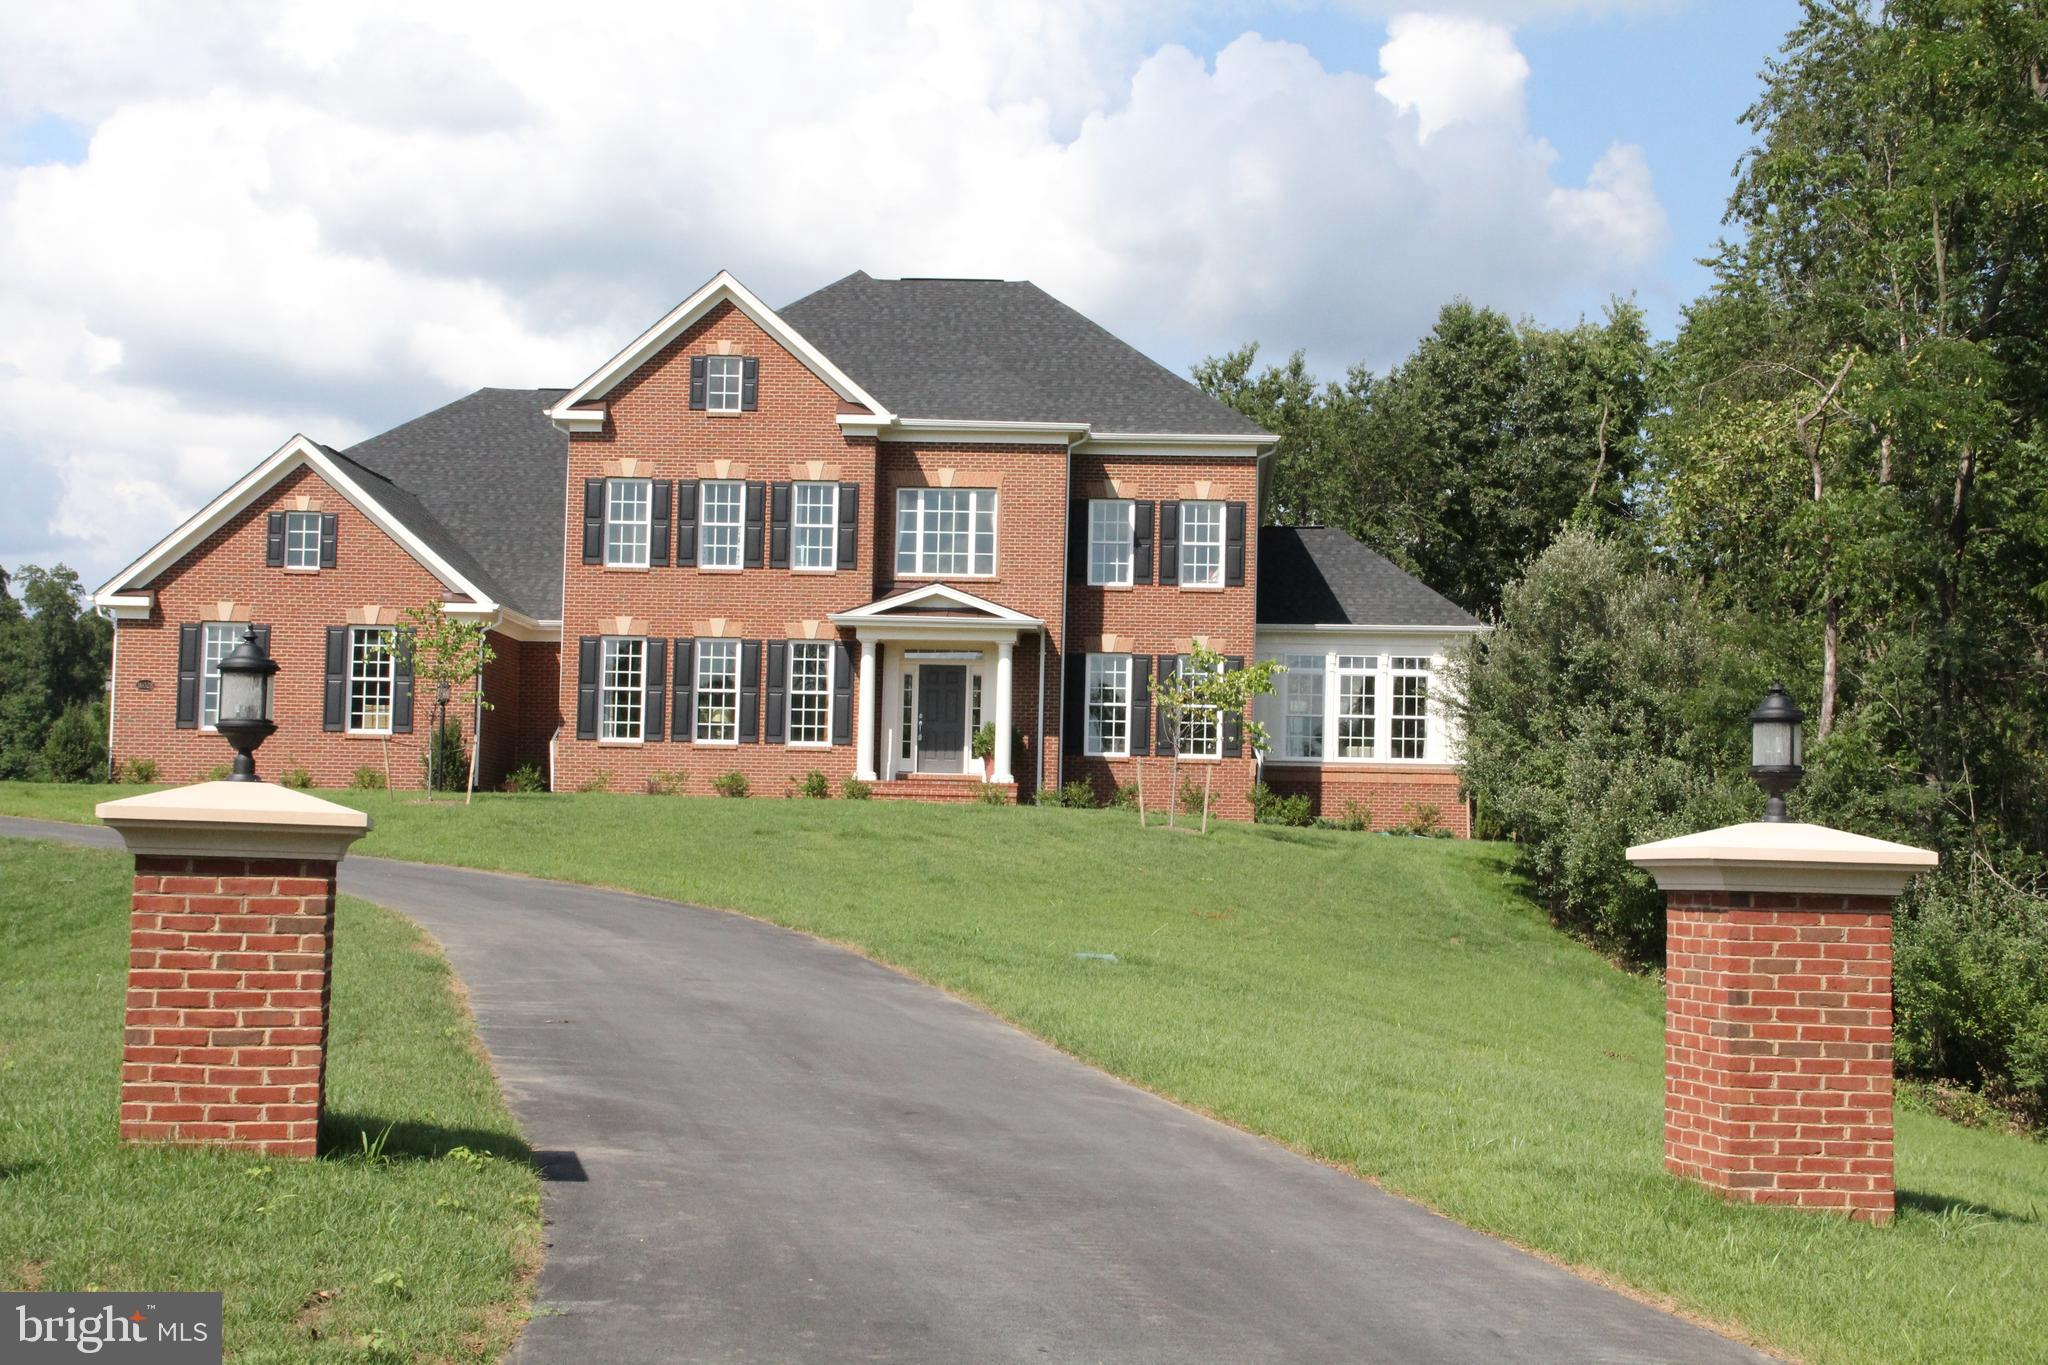 15979 WATERFORD CREEK CIRCLE, HAMILTON, VA 20158